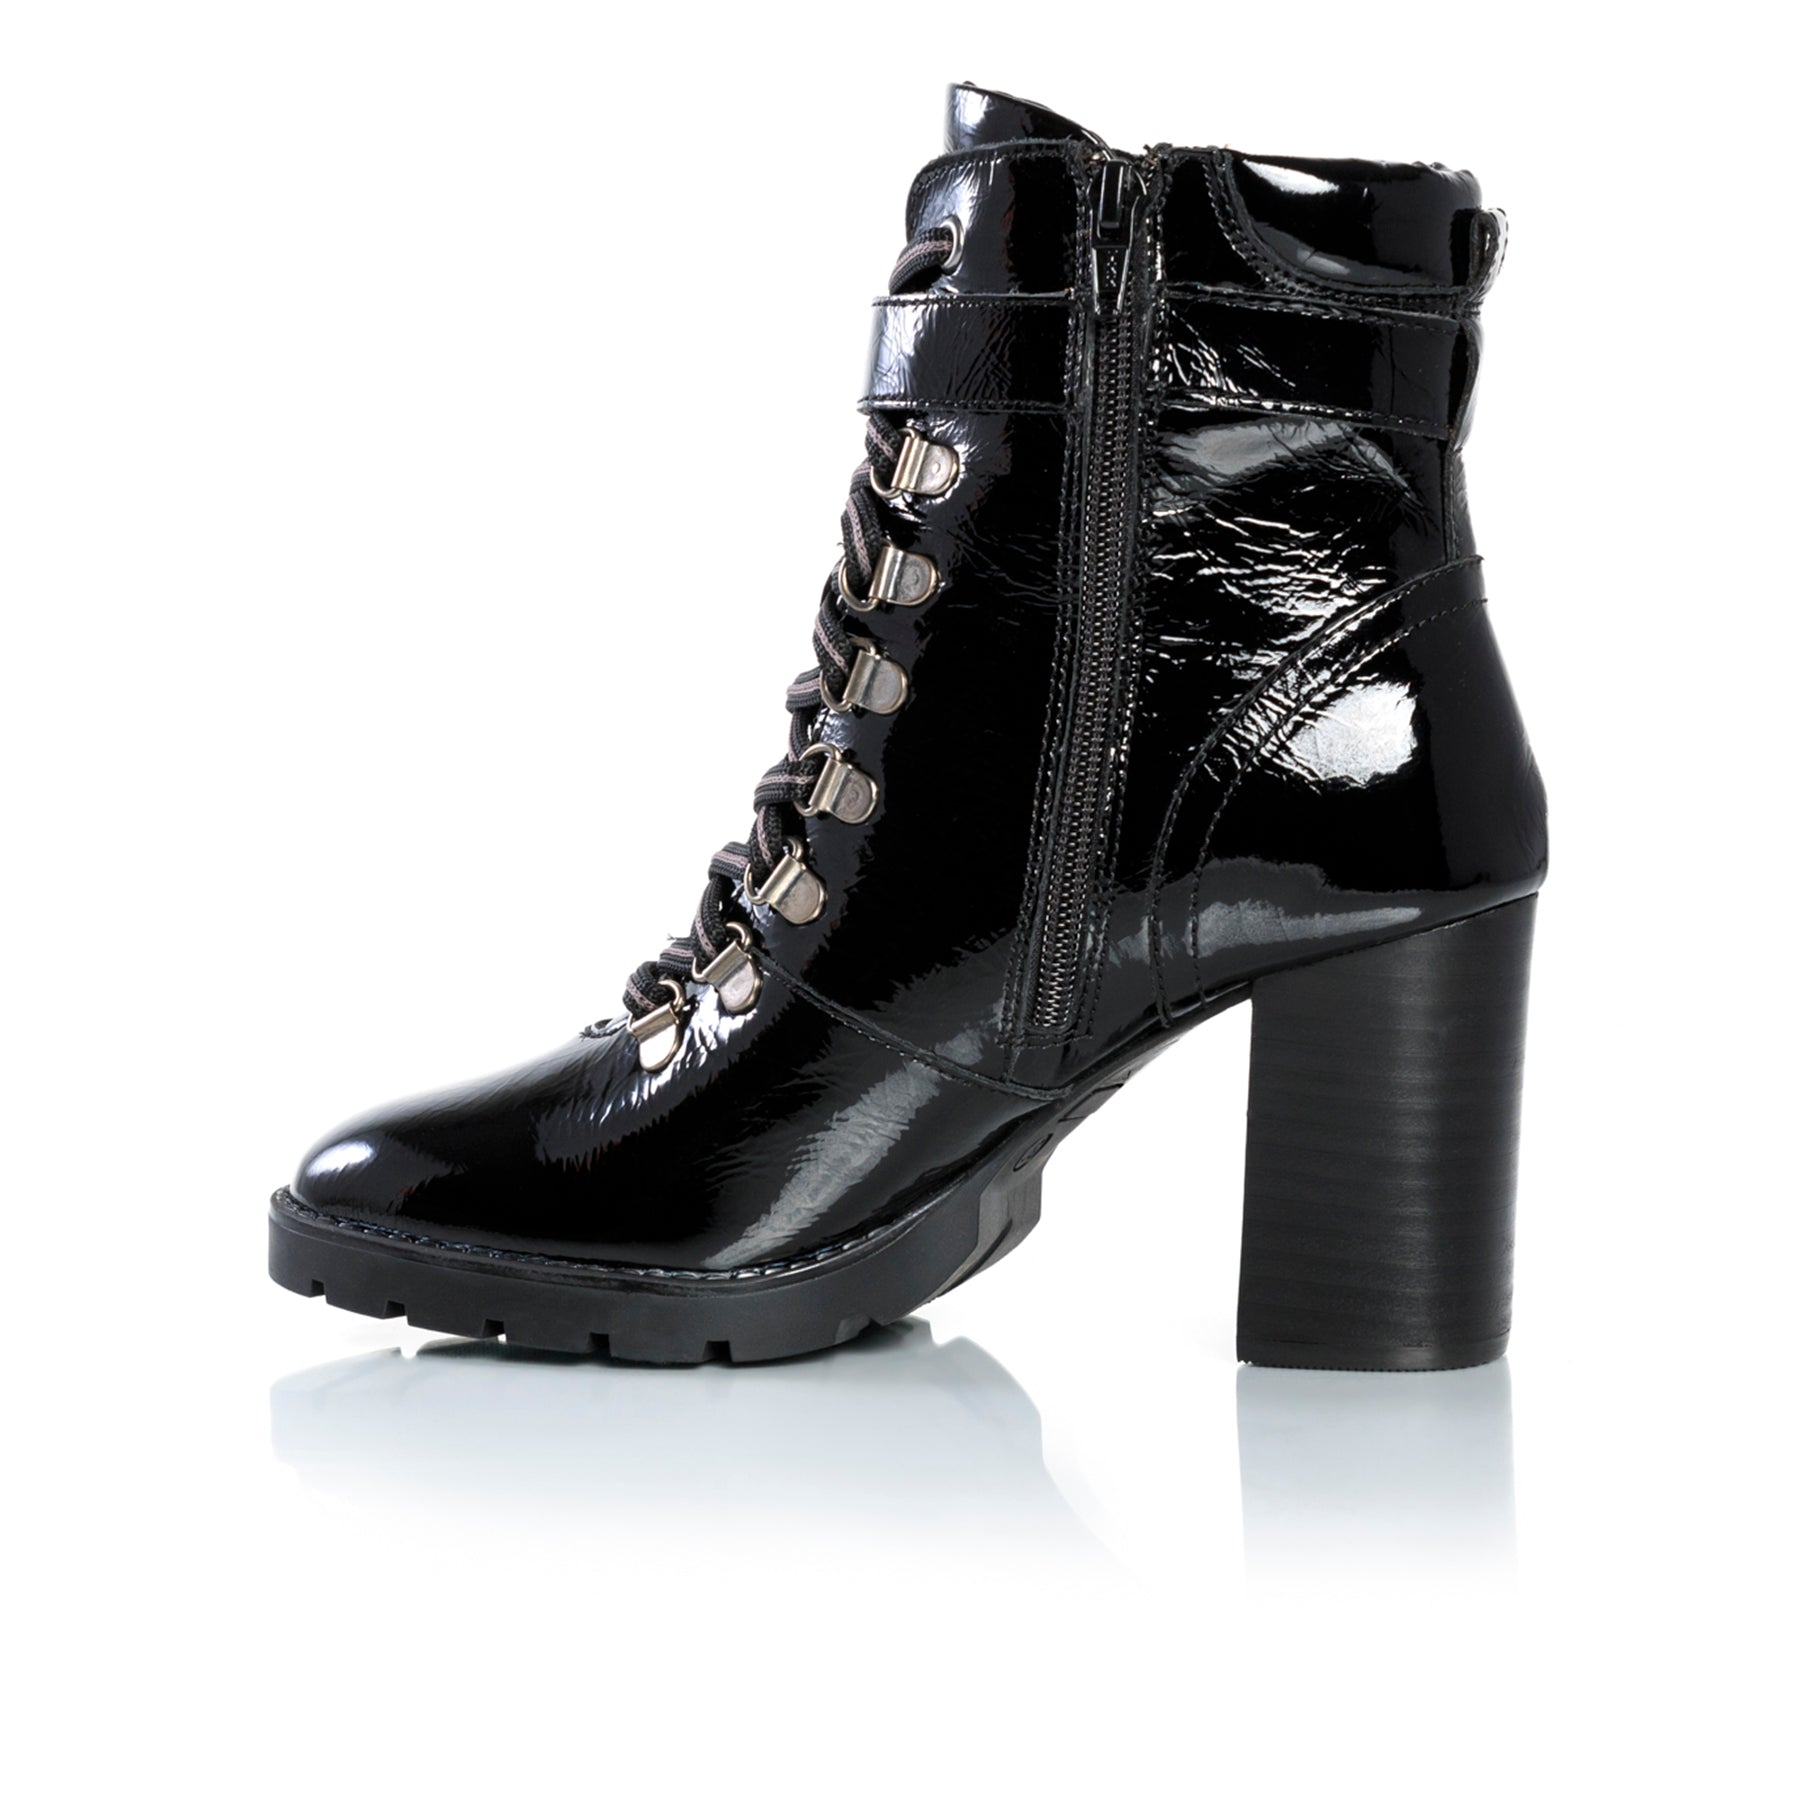 Aspen Black Naplack Ankle Boots